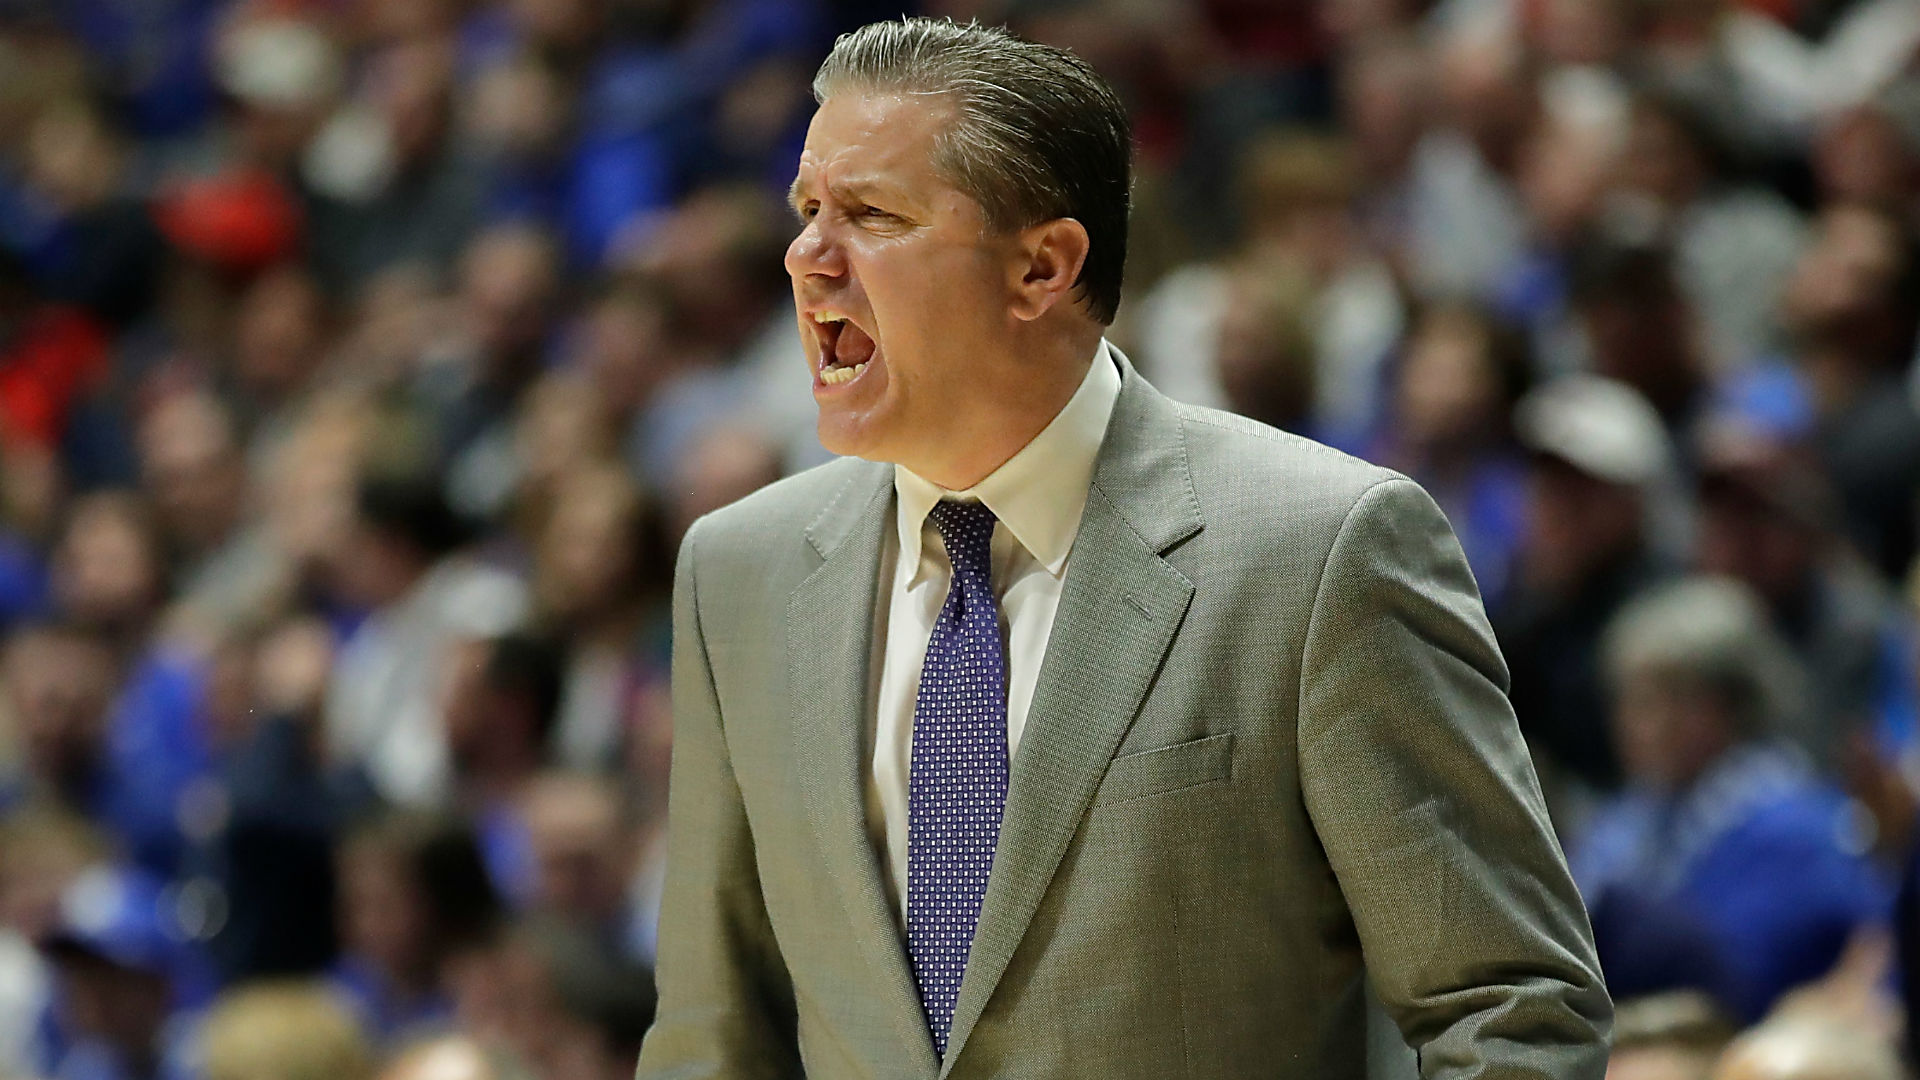 2013 Recruits Uk Basketball And Football Recruiting News: NCAA Tournament 2017: Kentucky Gets Slapped With The